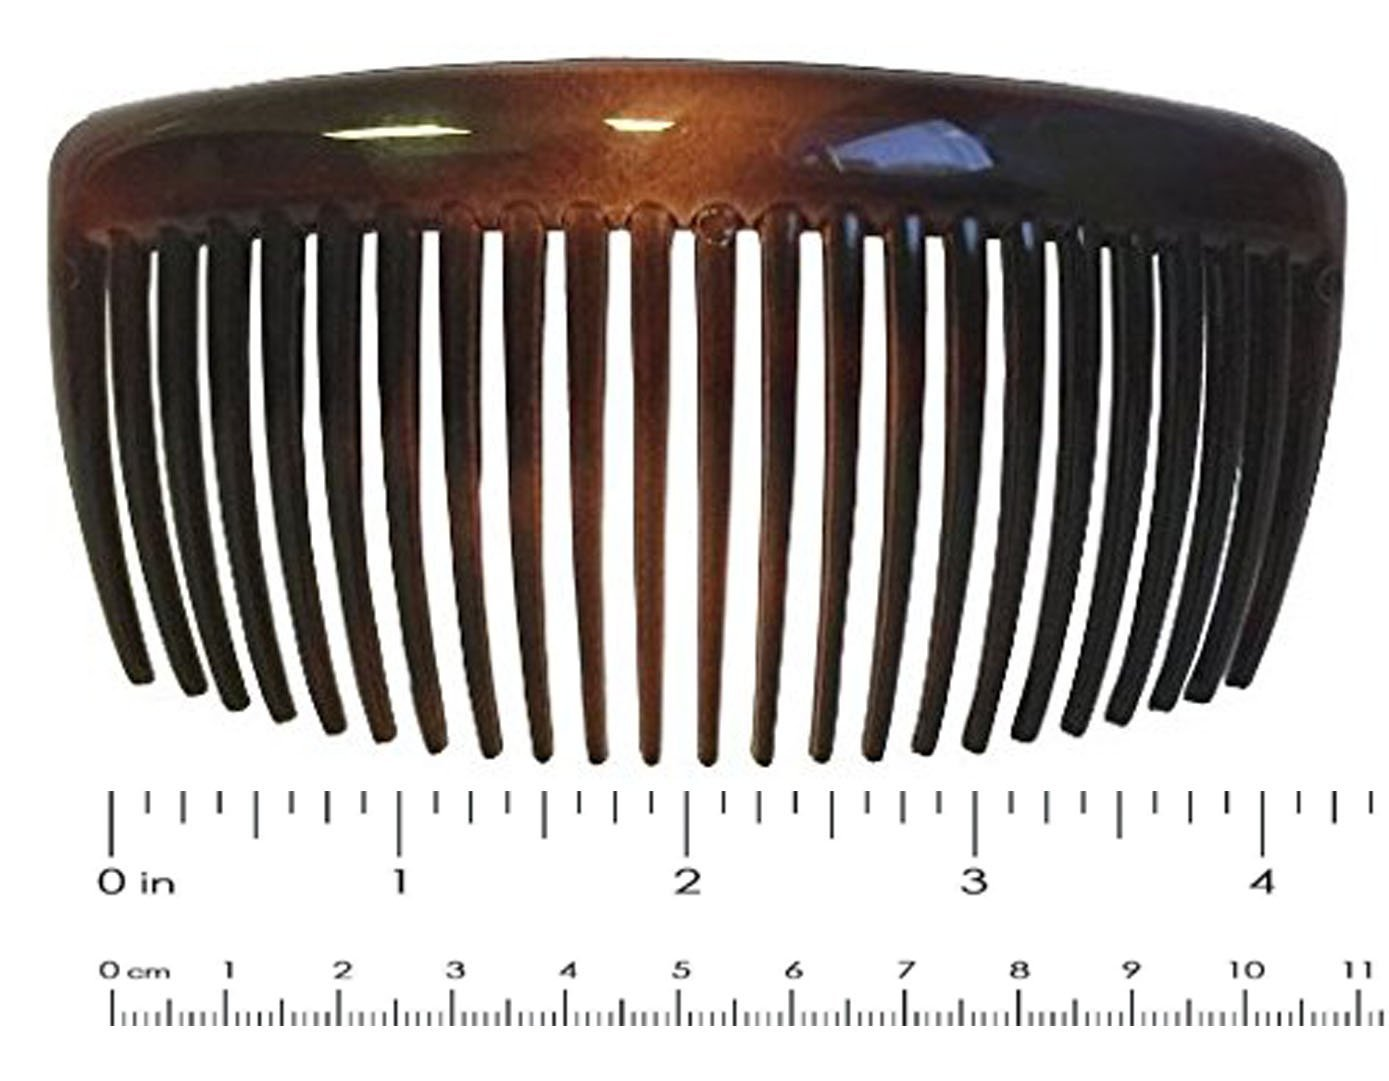 Parcelona French Large 2 Pieces Glossy Celluloid Shell Good Grip Updo 23 Teeth Hair Side Combs - 4.5 Inches by Parcelona (Image #1)